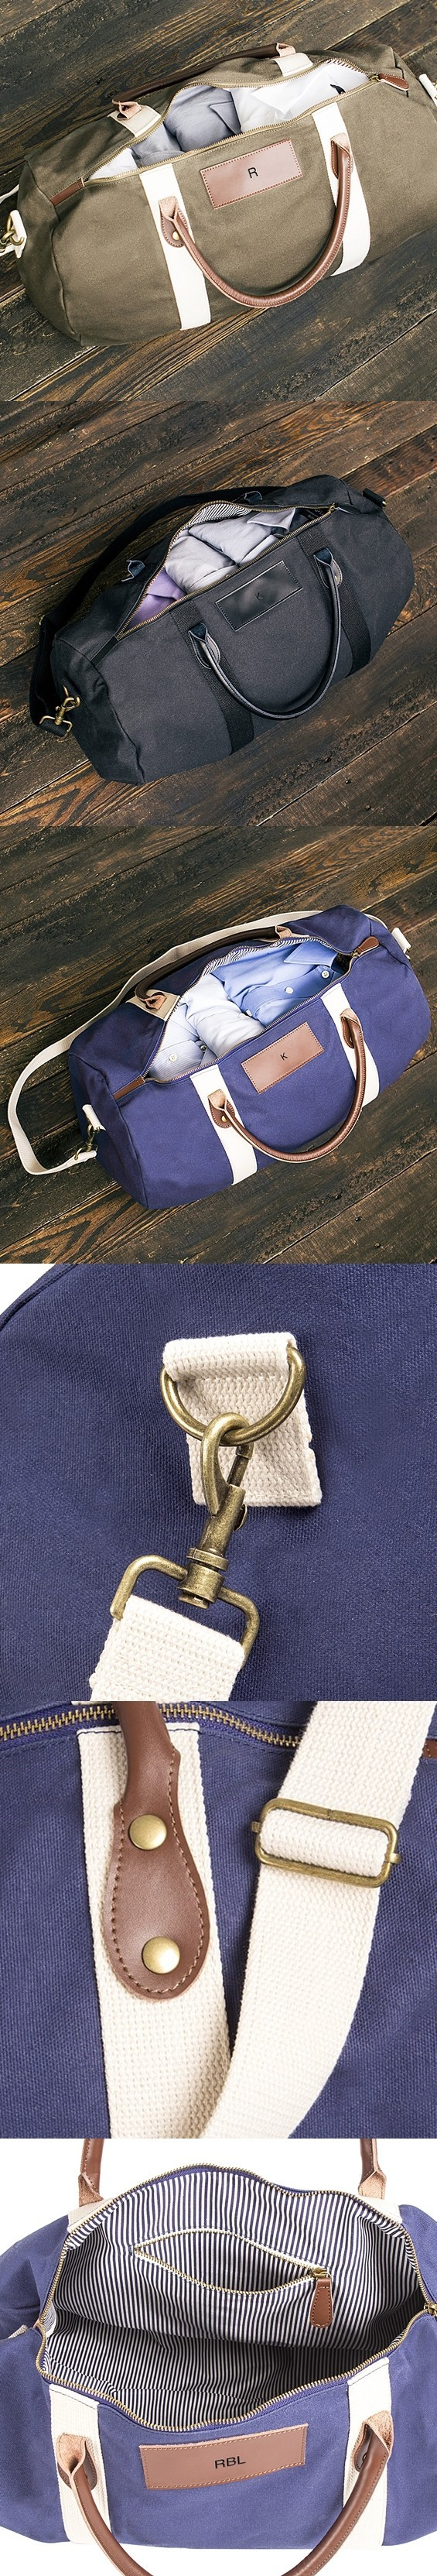 Personalized Waxed Canvas & Leather Duffle Bag (3 Colors)